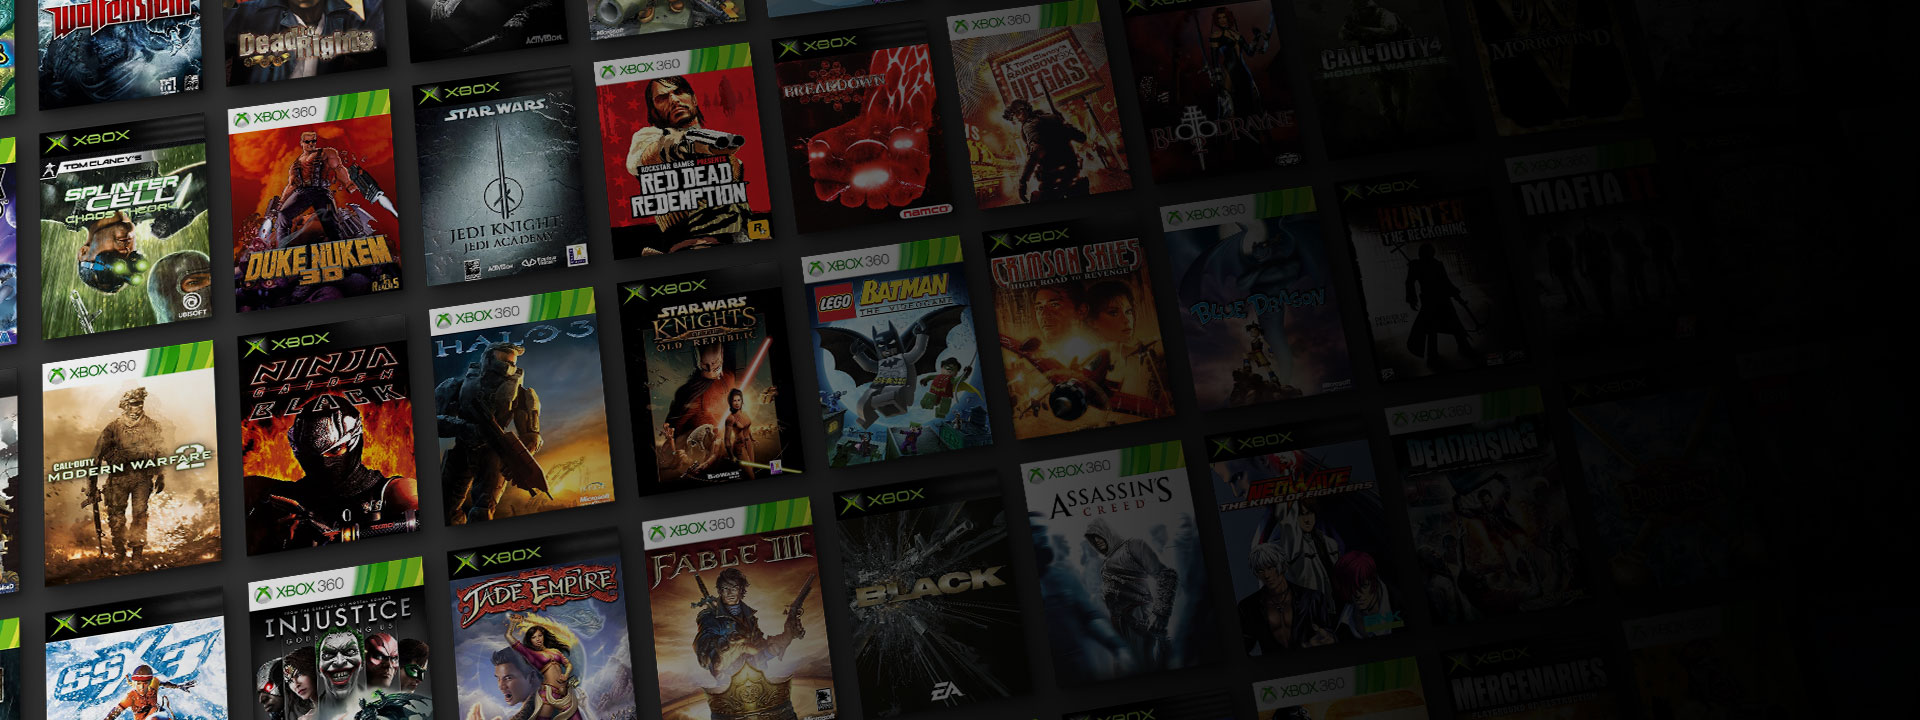 An collection of Xbox and Xbox 360 box shots